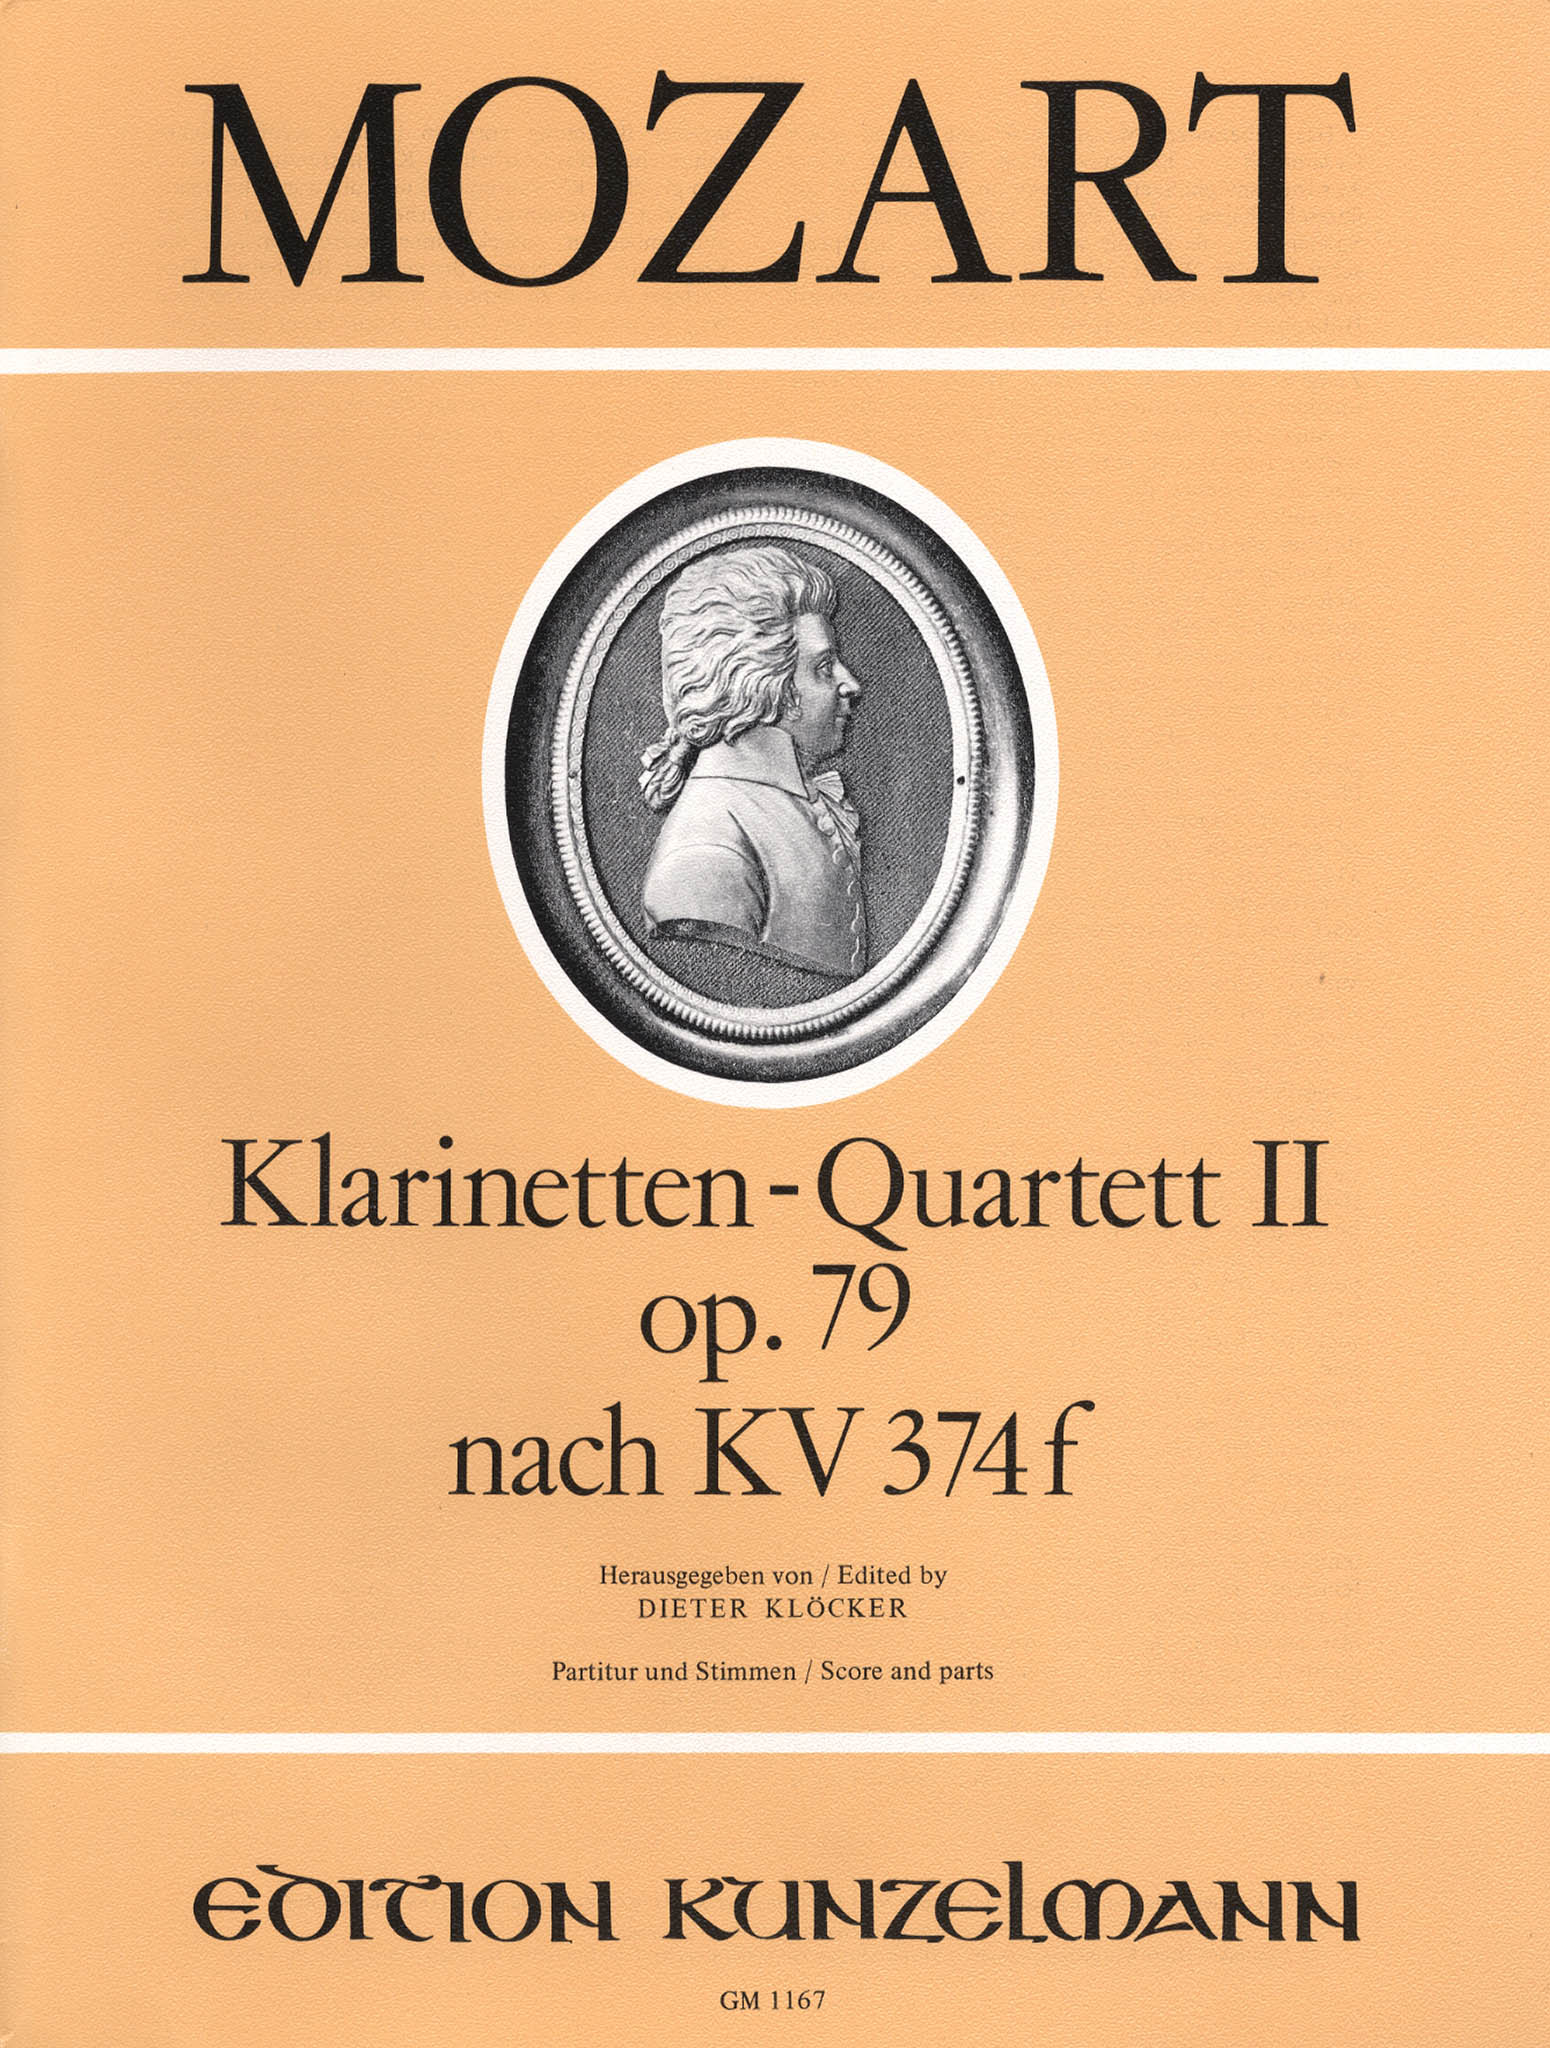 Violin Sonata in E-Flat Major, K. 380/374f Cover